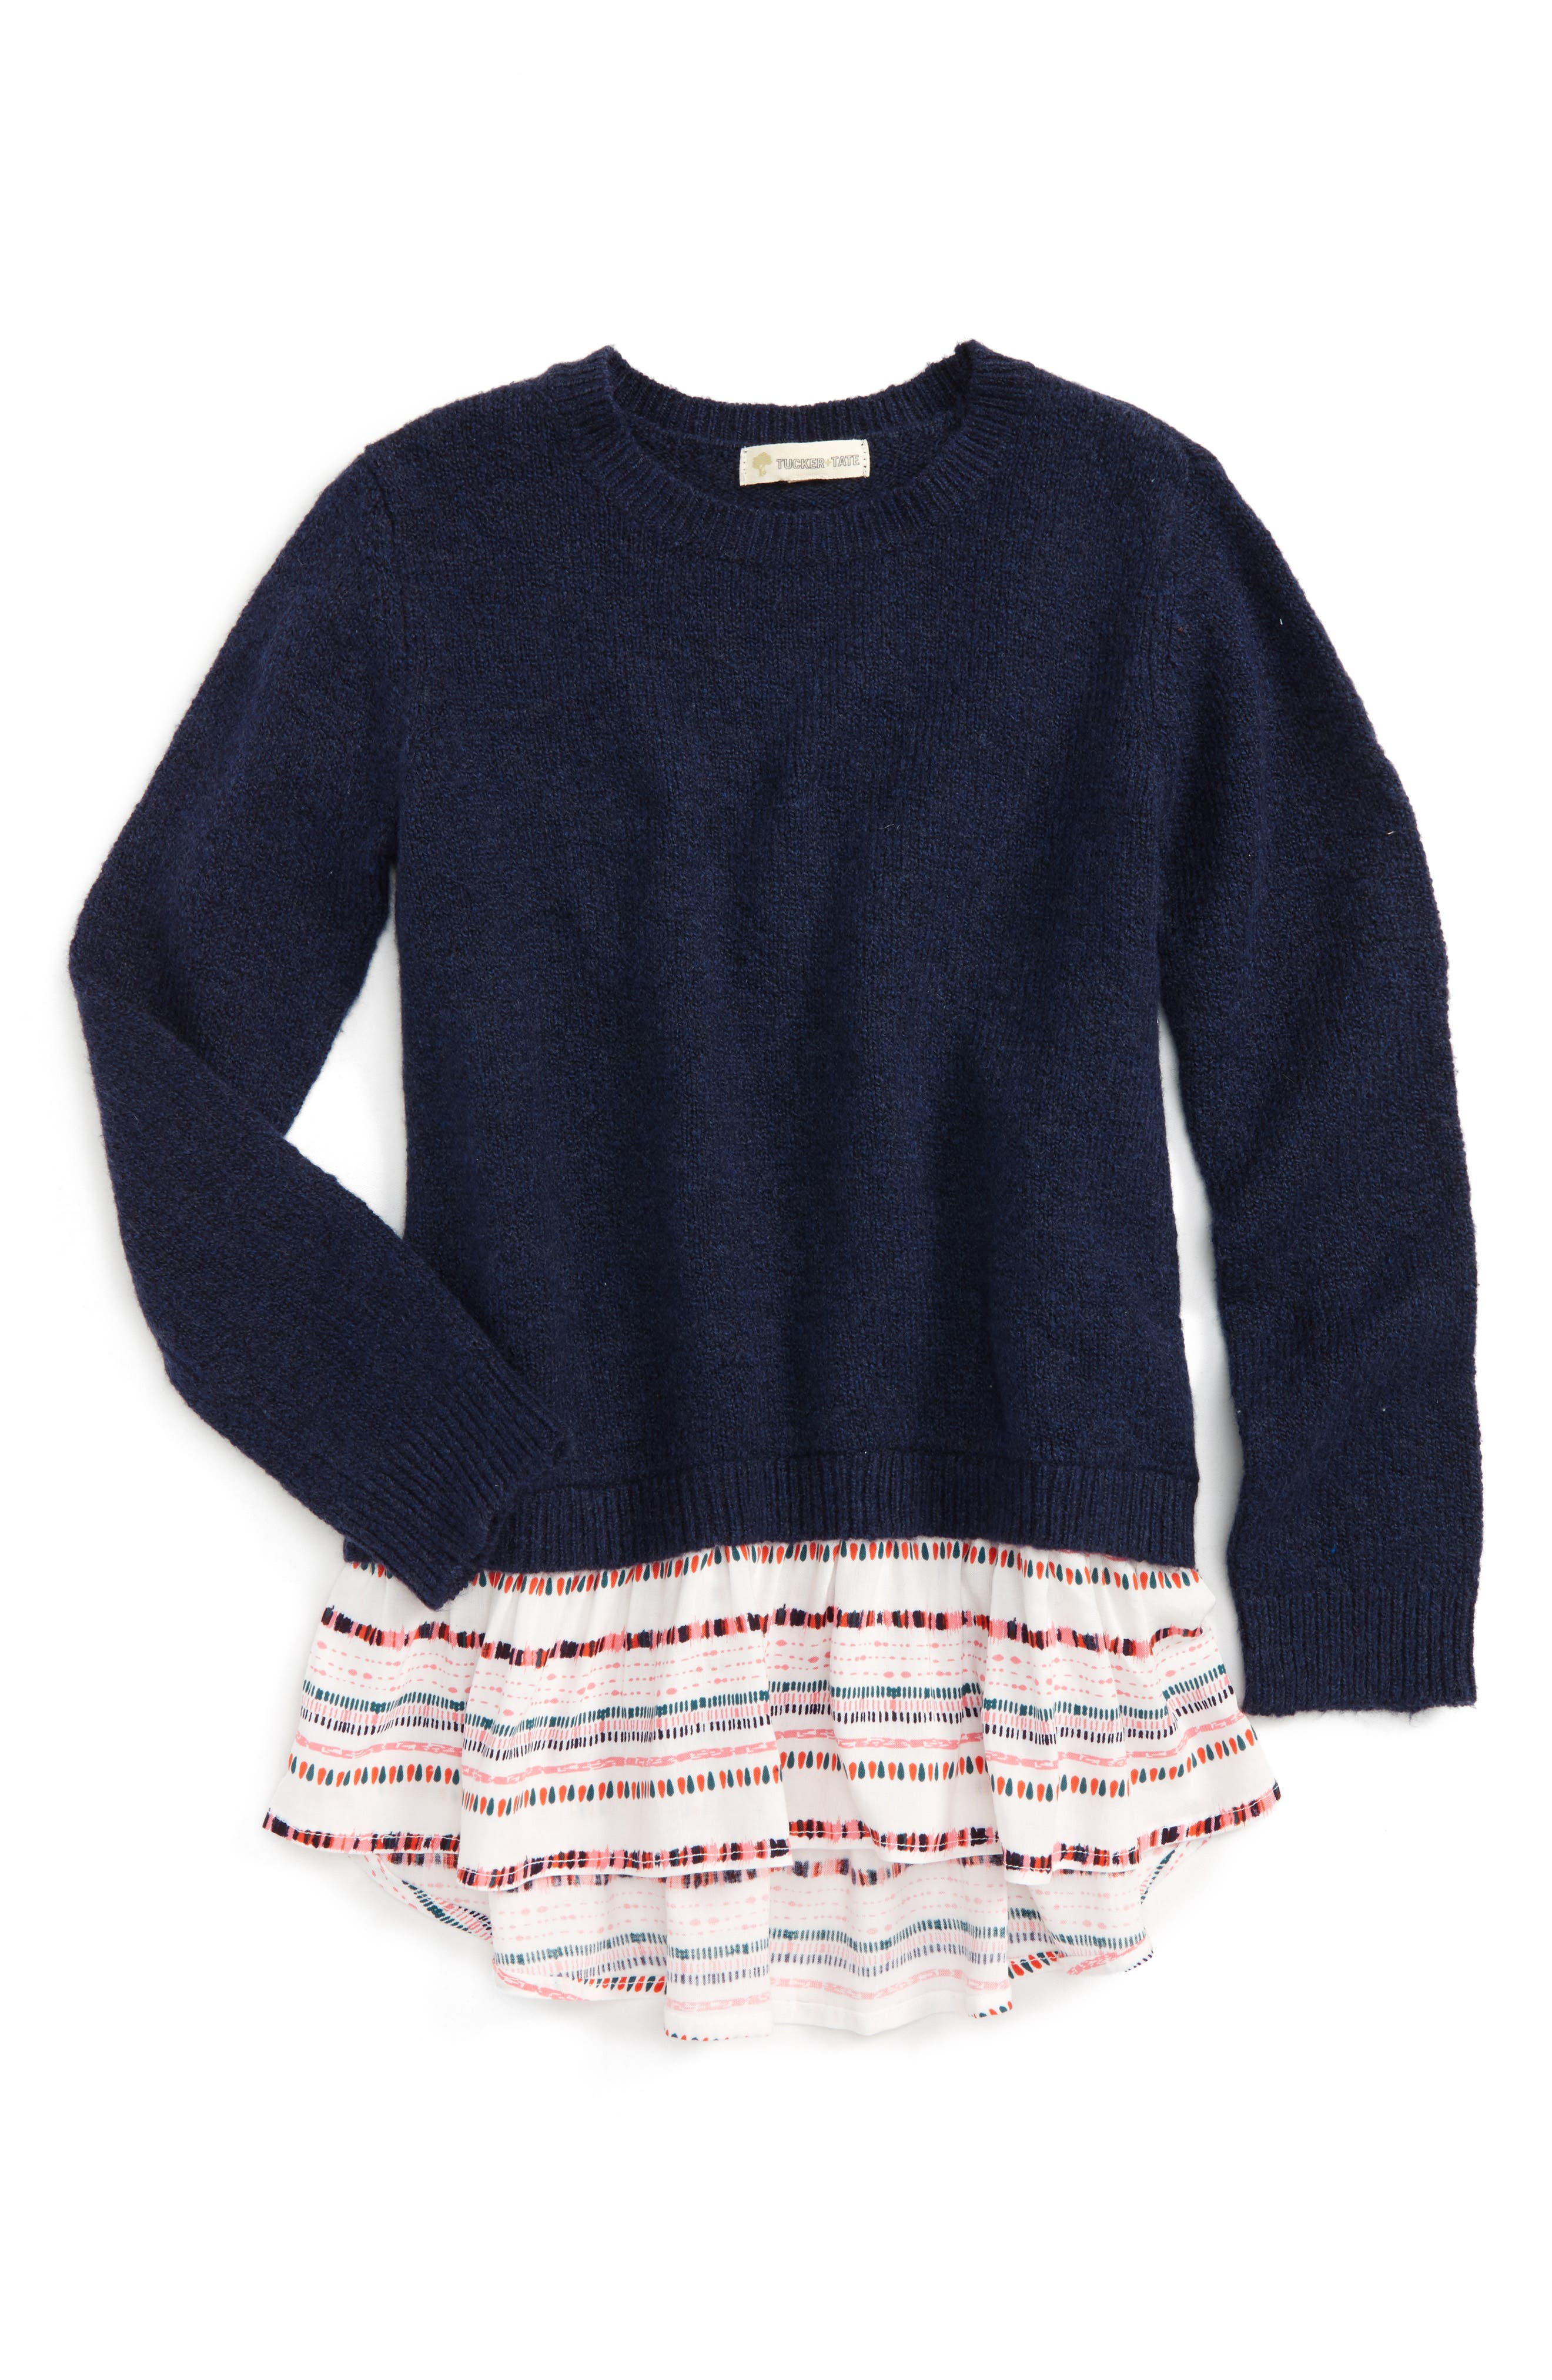 Main Image - Tucker + Tate Mixed Media Sweater (Toddler Girls, Little Girls & Big Girls)